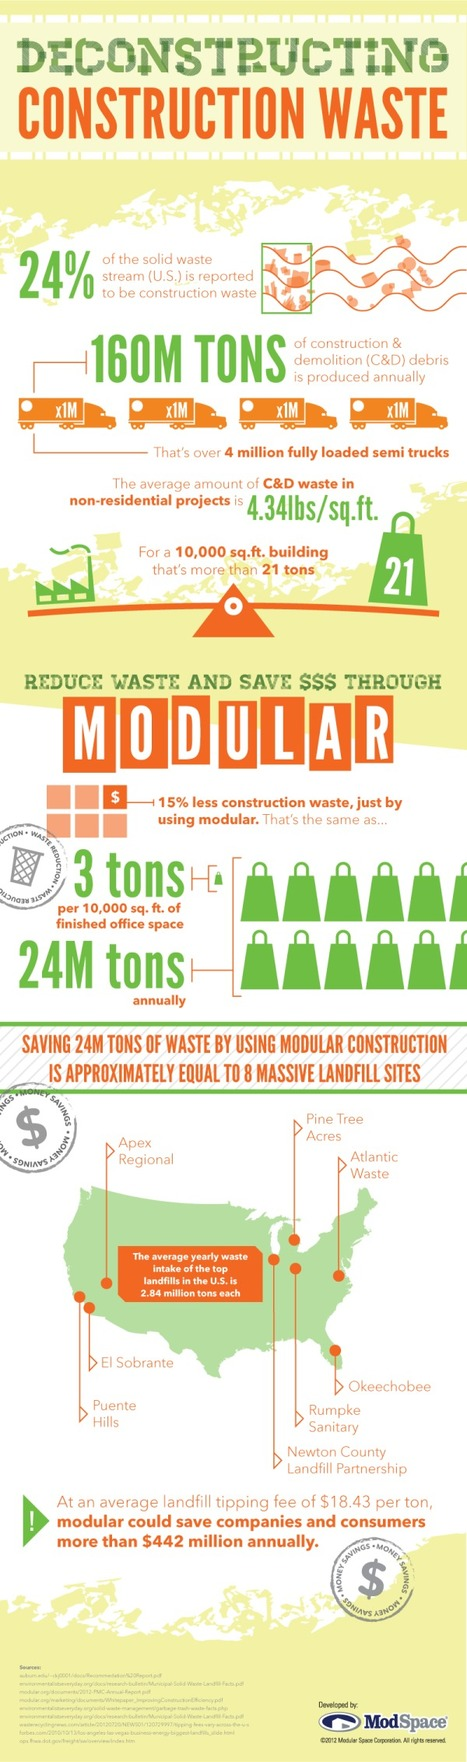 Deconstructing Construction Waste & Saving Big with Modular [infographic] | green infographics | Scoop.it